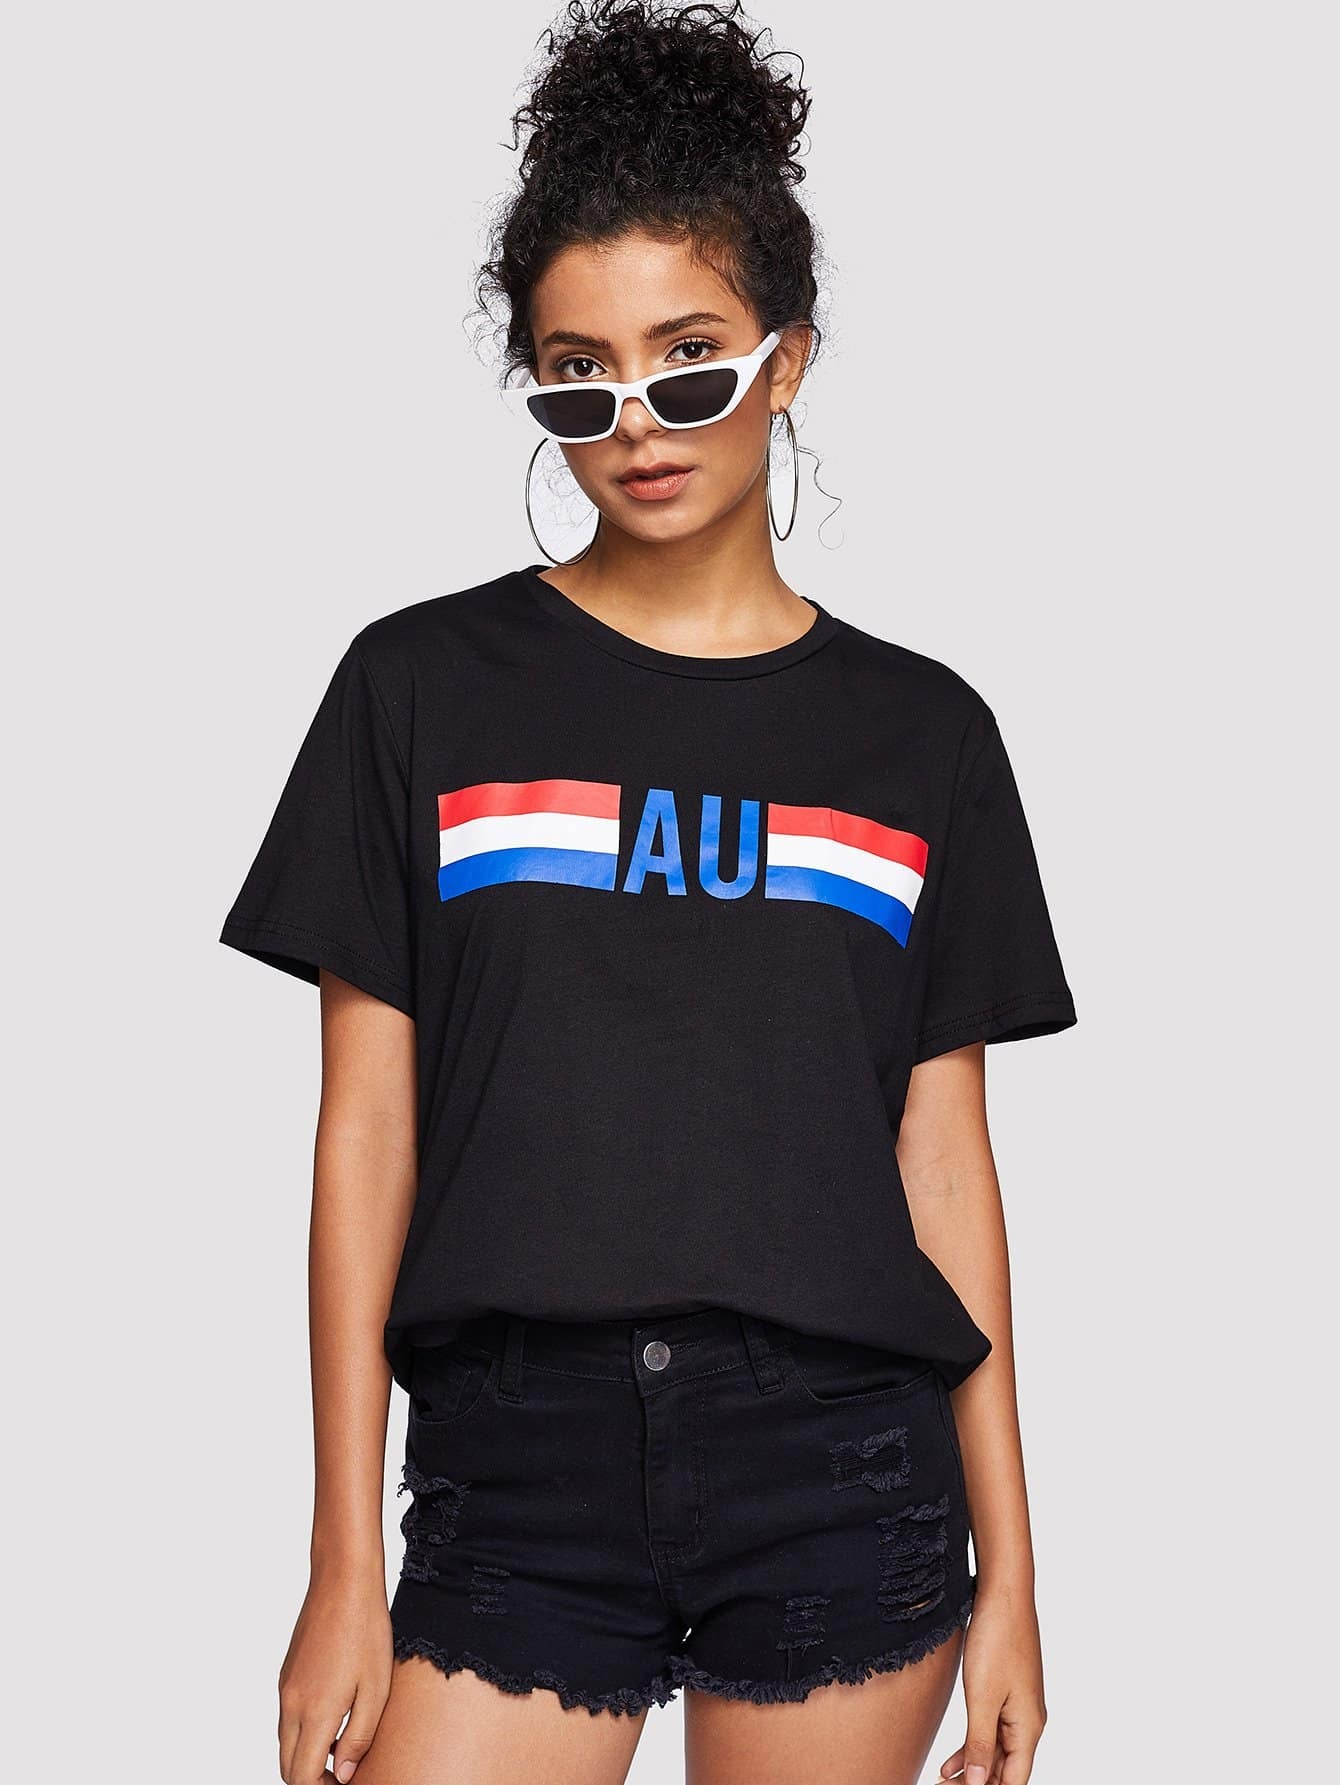 Stripe And Letter Print Tee насос piusi f0033208a